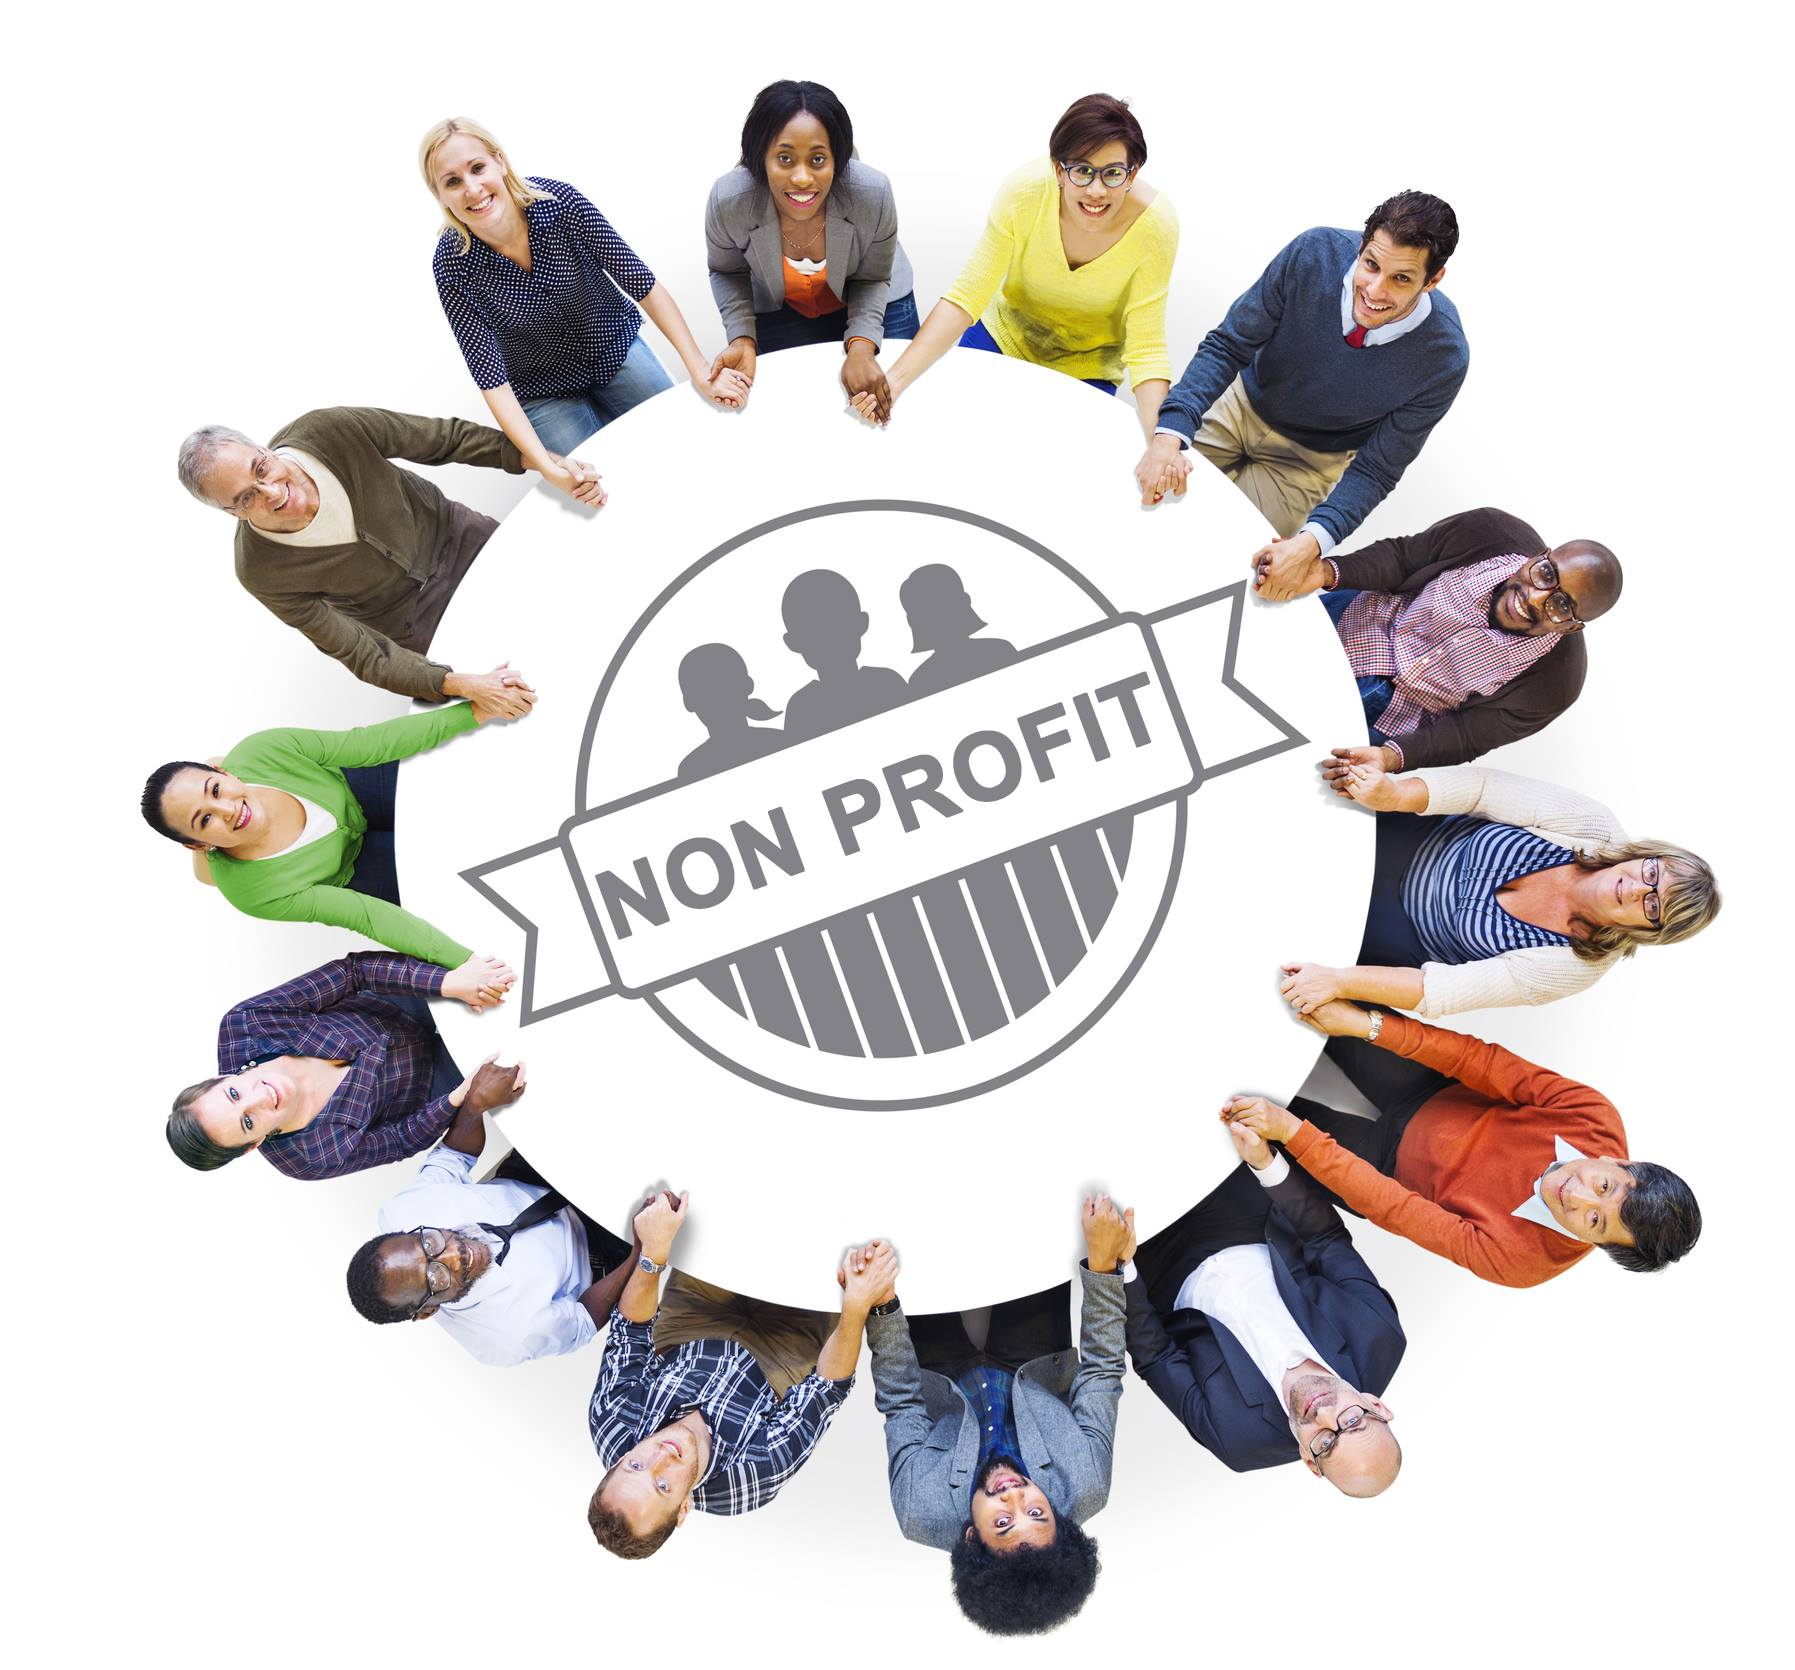 Fundraising of Nonprofit Organisation by Merchant Account